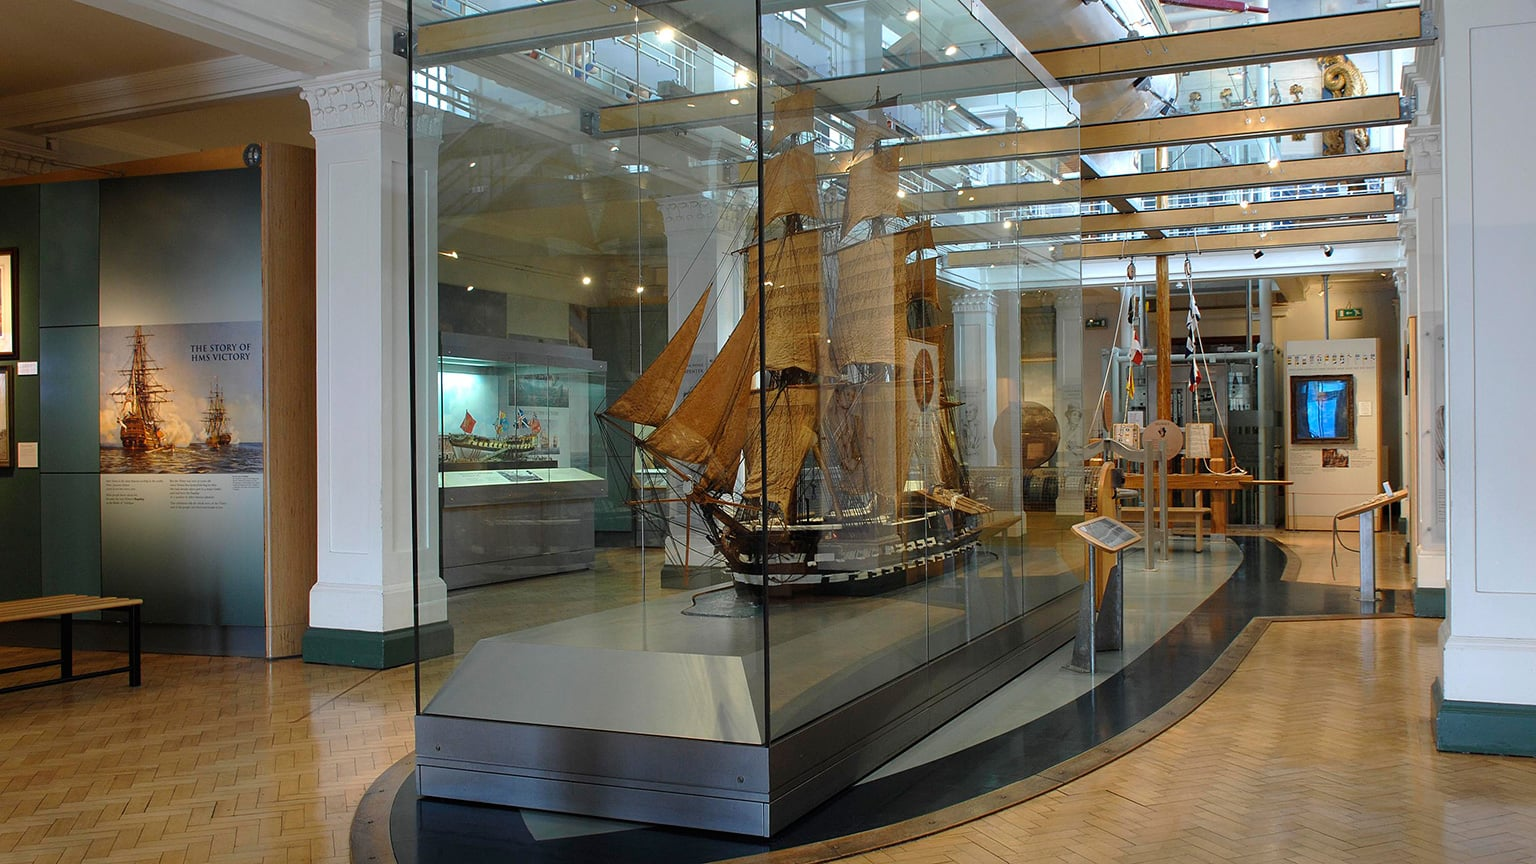 The National Museum of the Royal Navy